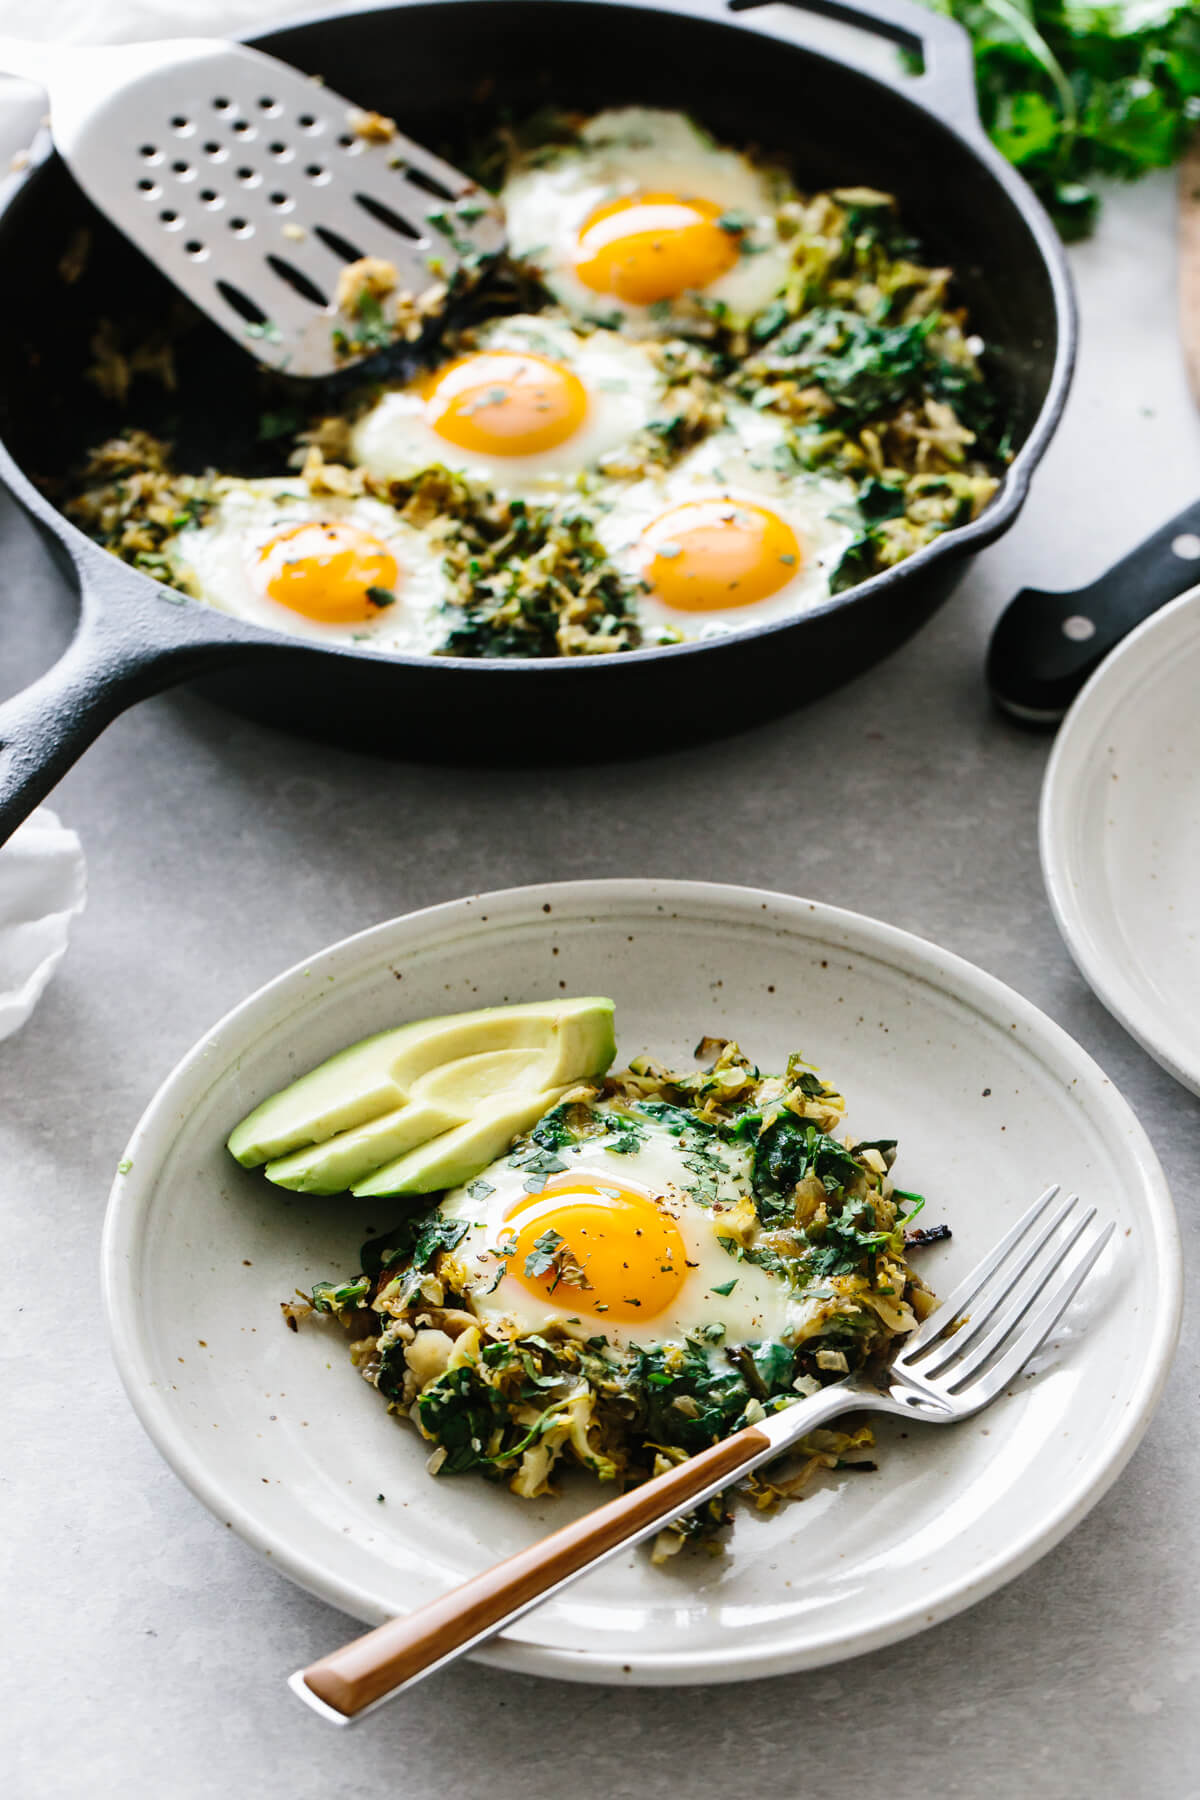 Scooping out a portion of green shakshuka to a plate, topped with avocado.